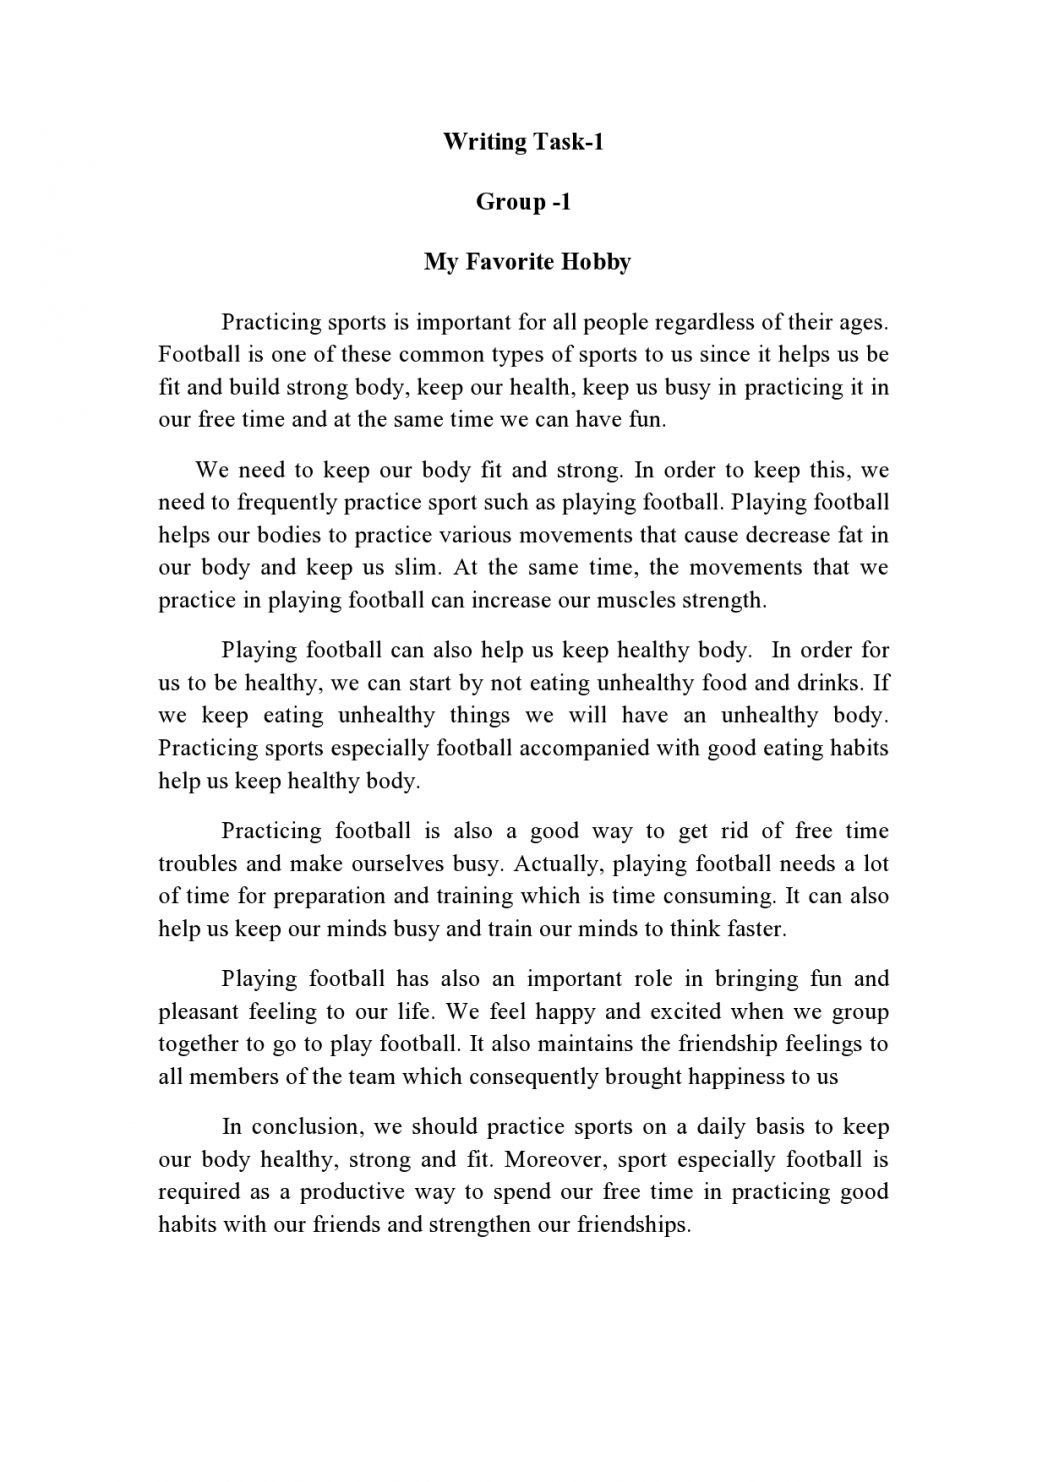 011 My Hobby Essay Example Writing Task One Blended Learning Environment W T Final Dr Write An On Gardening In English About Your Favorite Impressive Urdu Class 7 Hindi Cricket Marathi Full